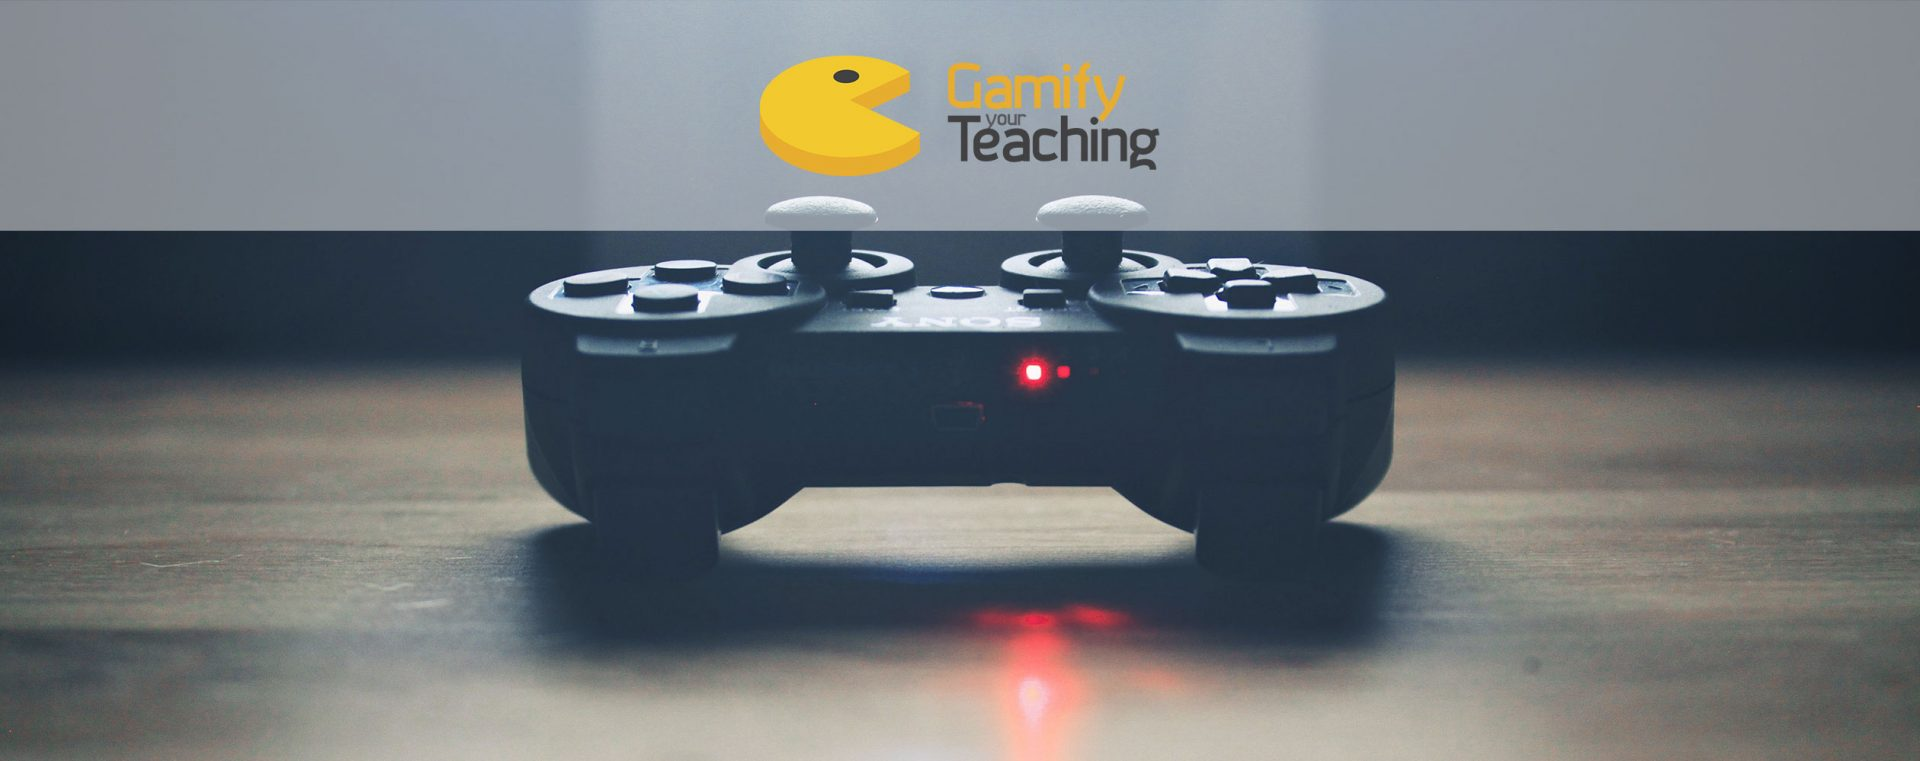 gamify-your-teaching